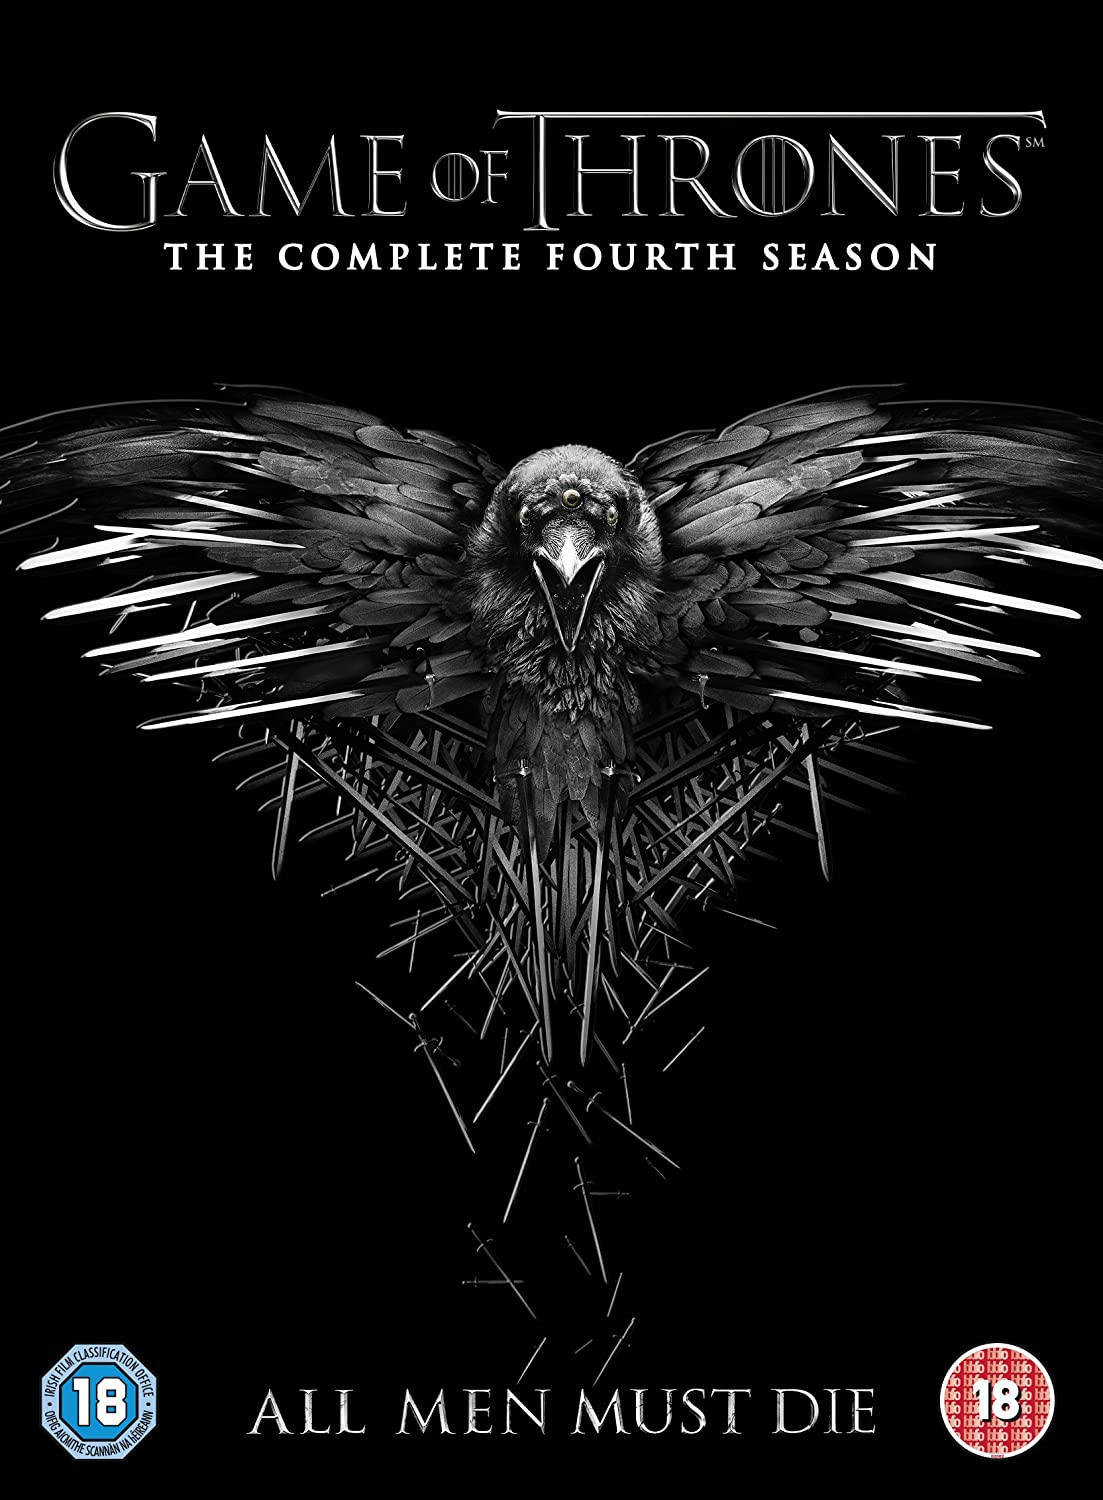 Game of Thrones S4 (2014) Subtitle Indonesia